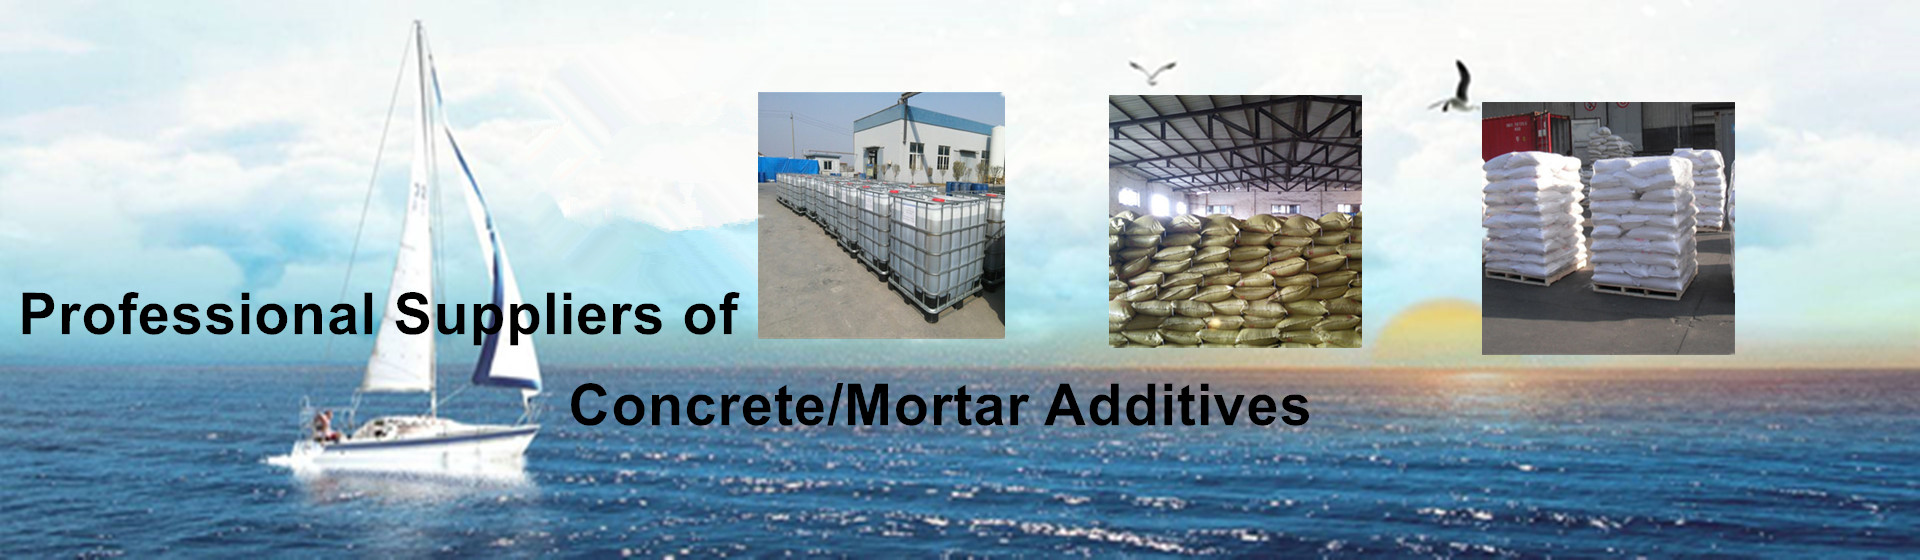 concrete mortar additives